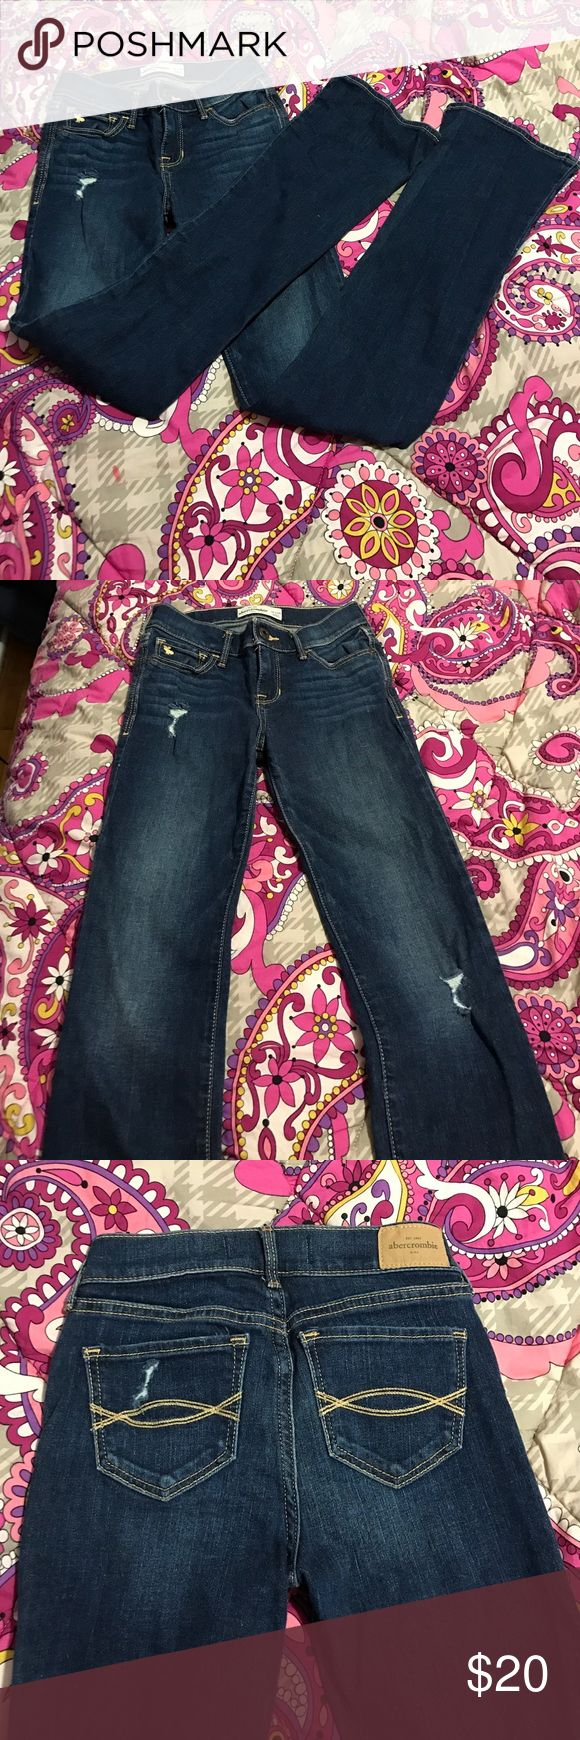 Abercrombie Kids Bootleg Jeans EUC Abercrombie kids lightly distressed bootleg jeans. Darker wash. Size 14 slim. abercrombie kids Bottoms Jeans